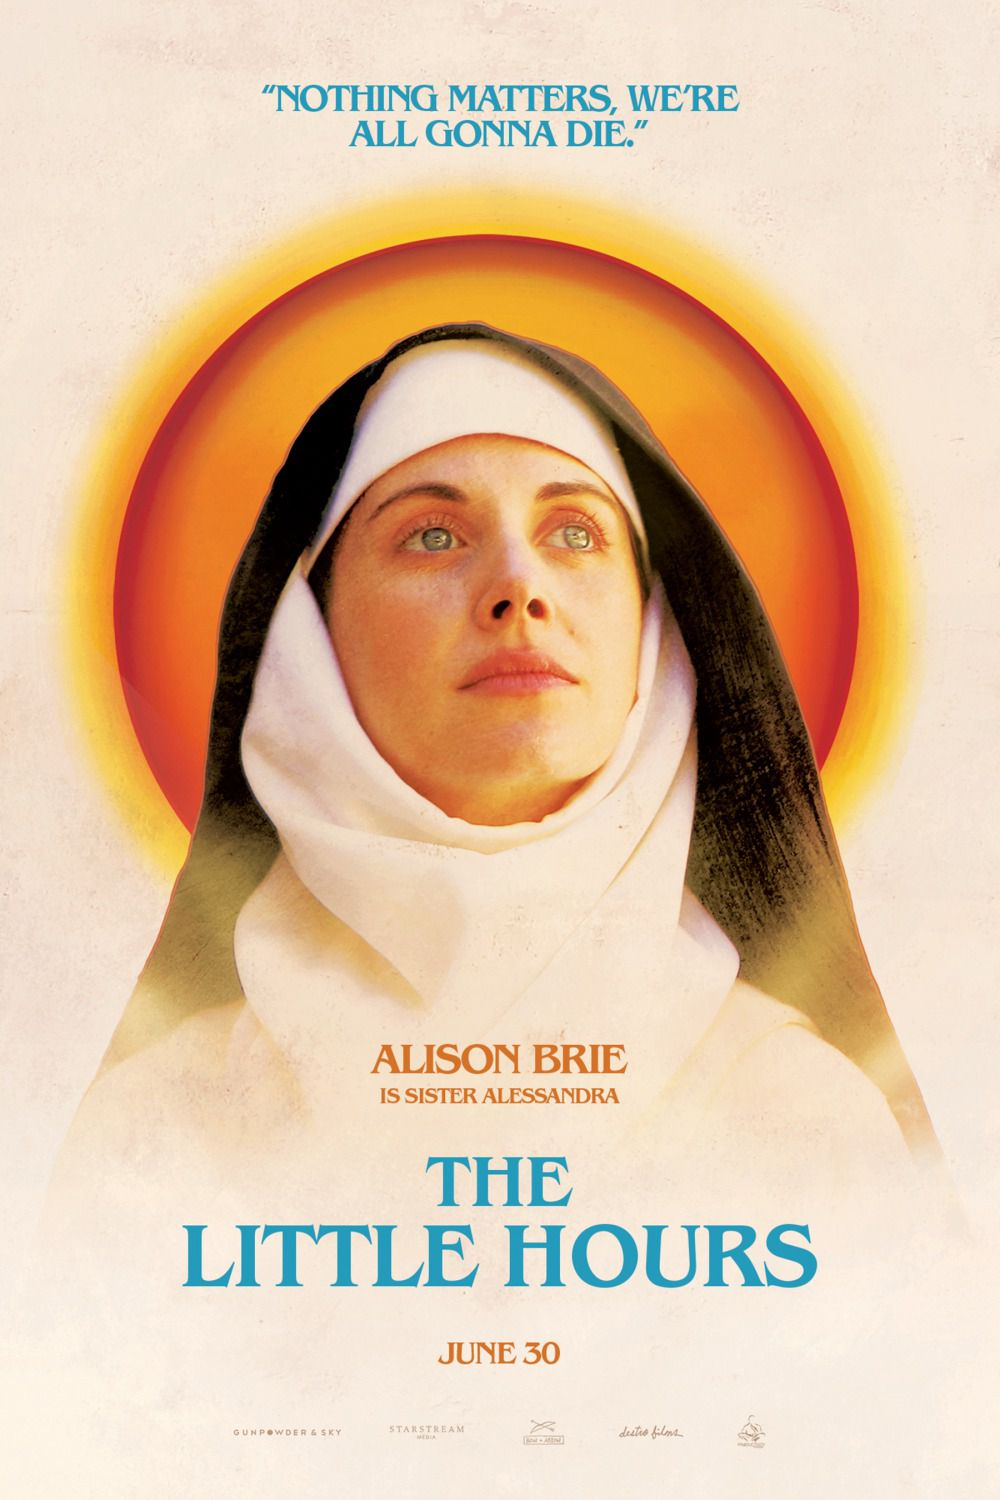 Little Hours - poster - Alison Brie - Sister Alessandra